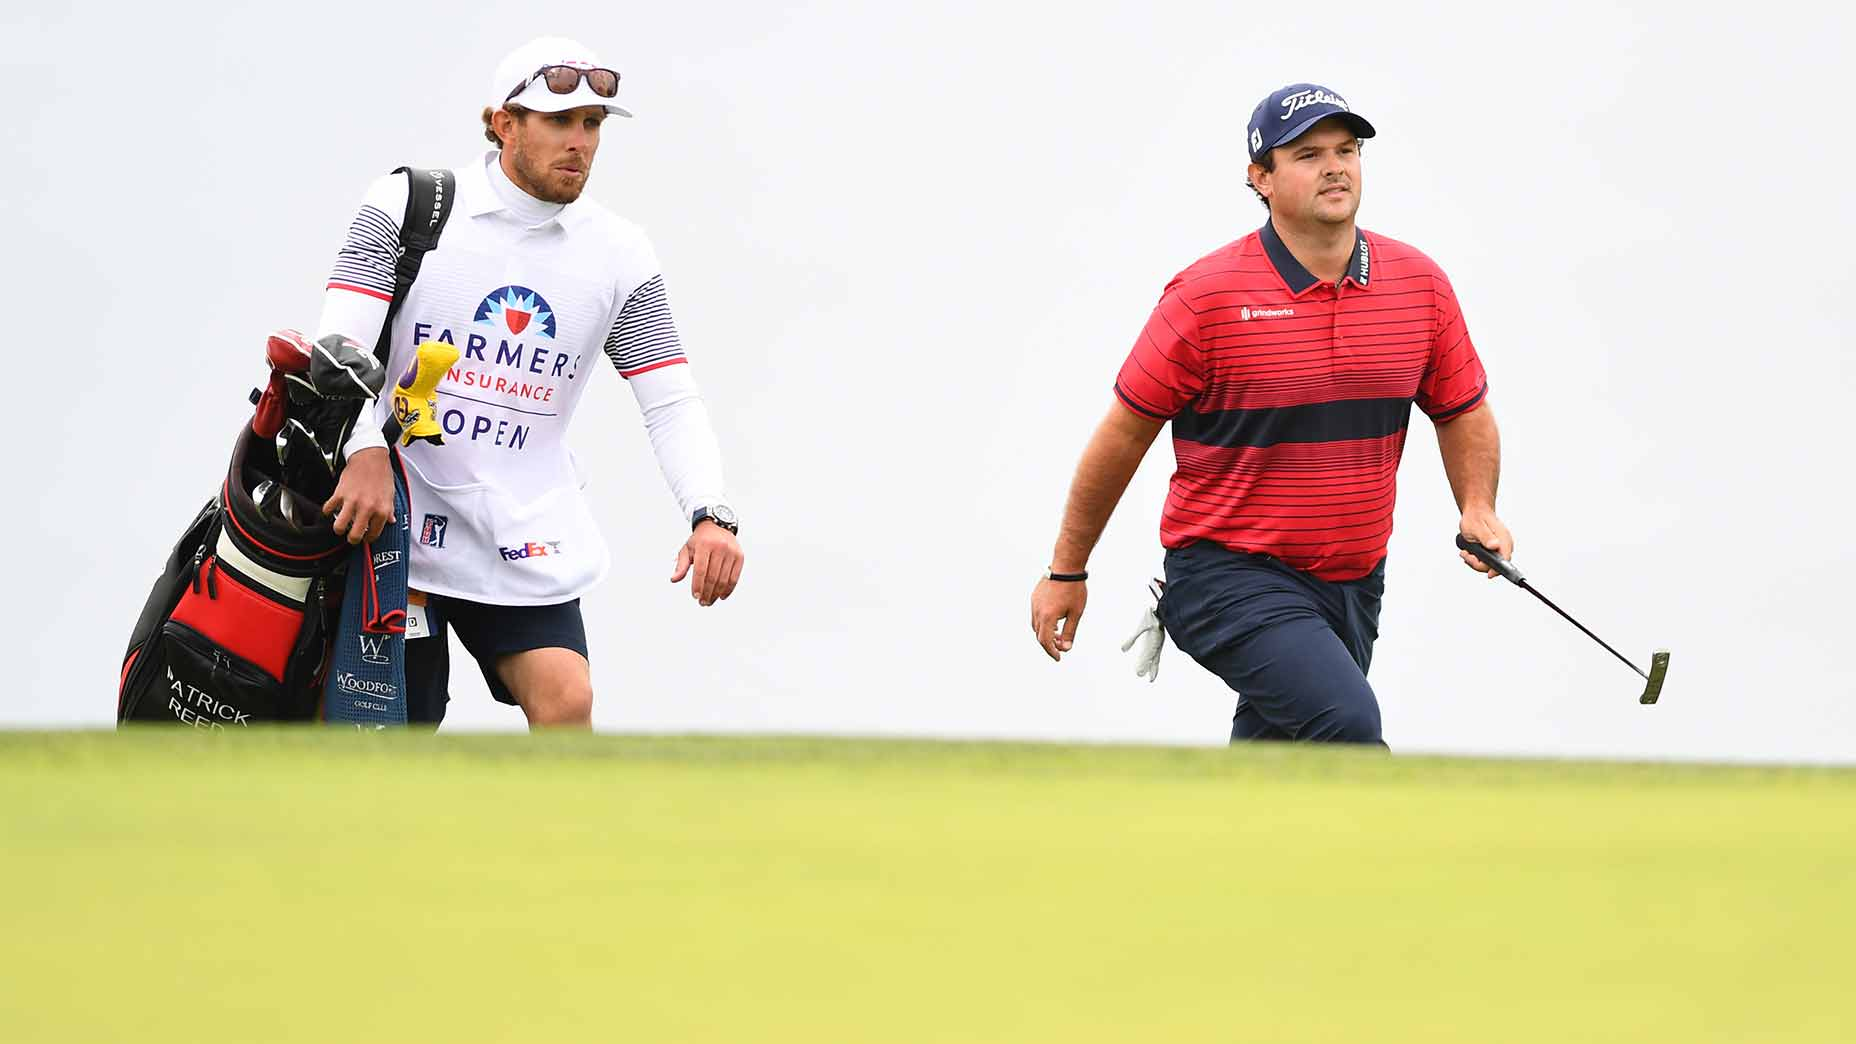 Tour Confidential: Was the controversial Patrick Reed ruling handled properly?